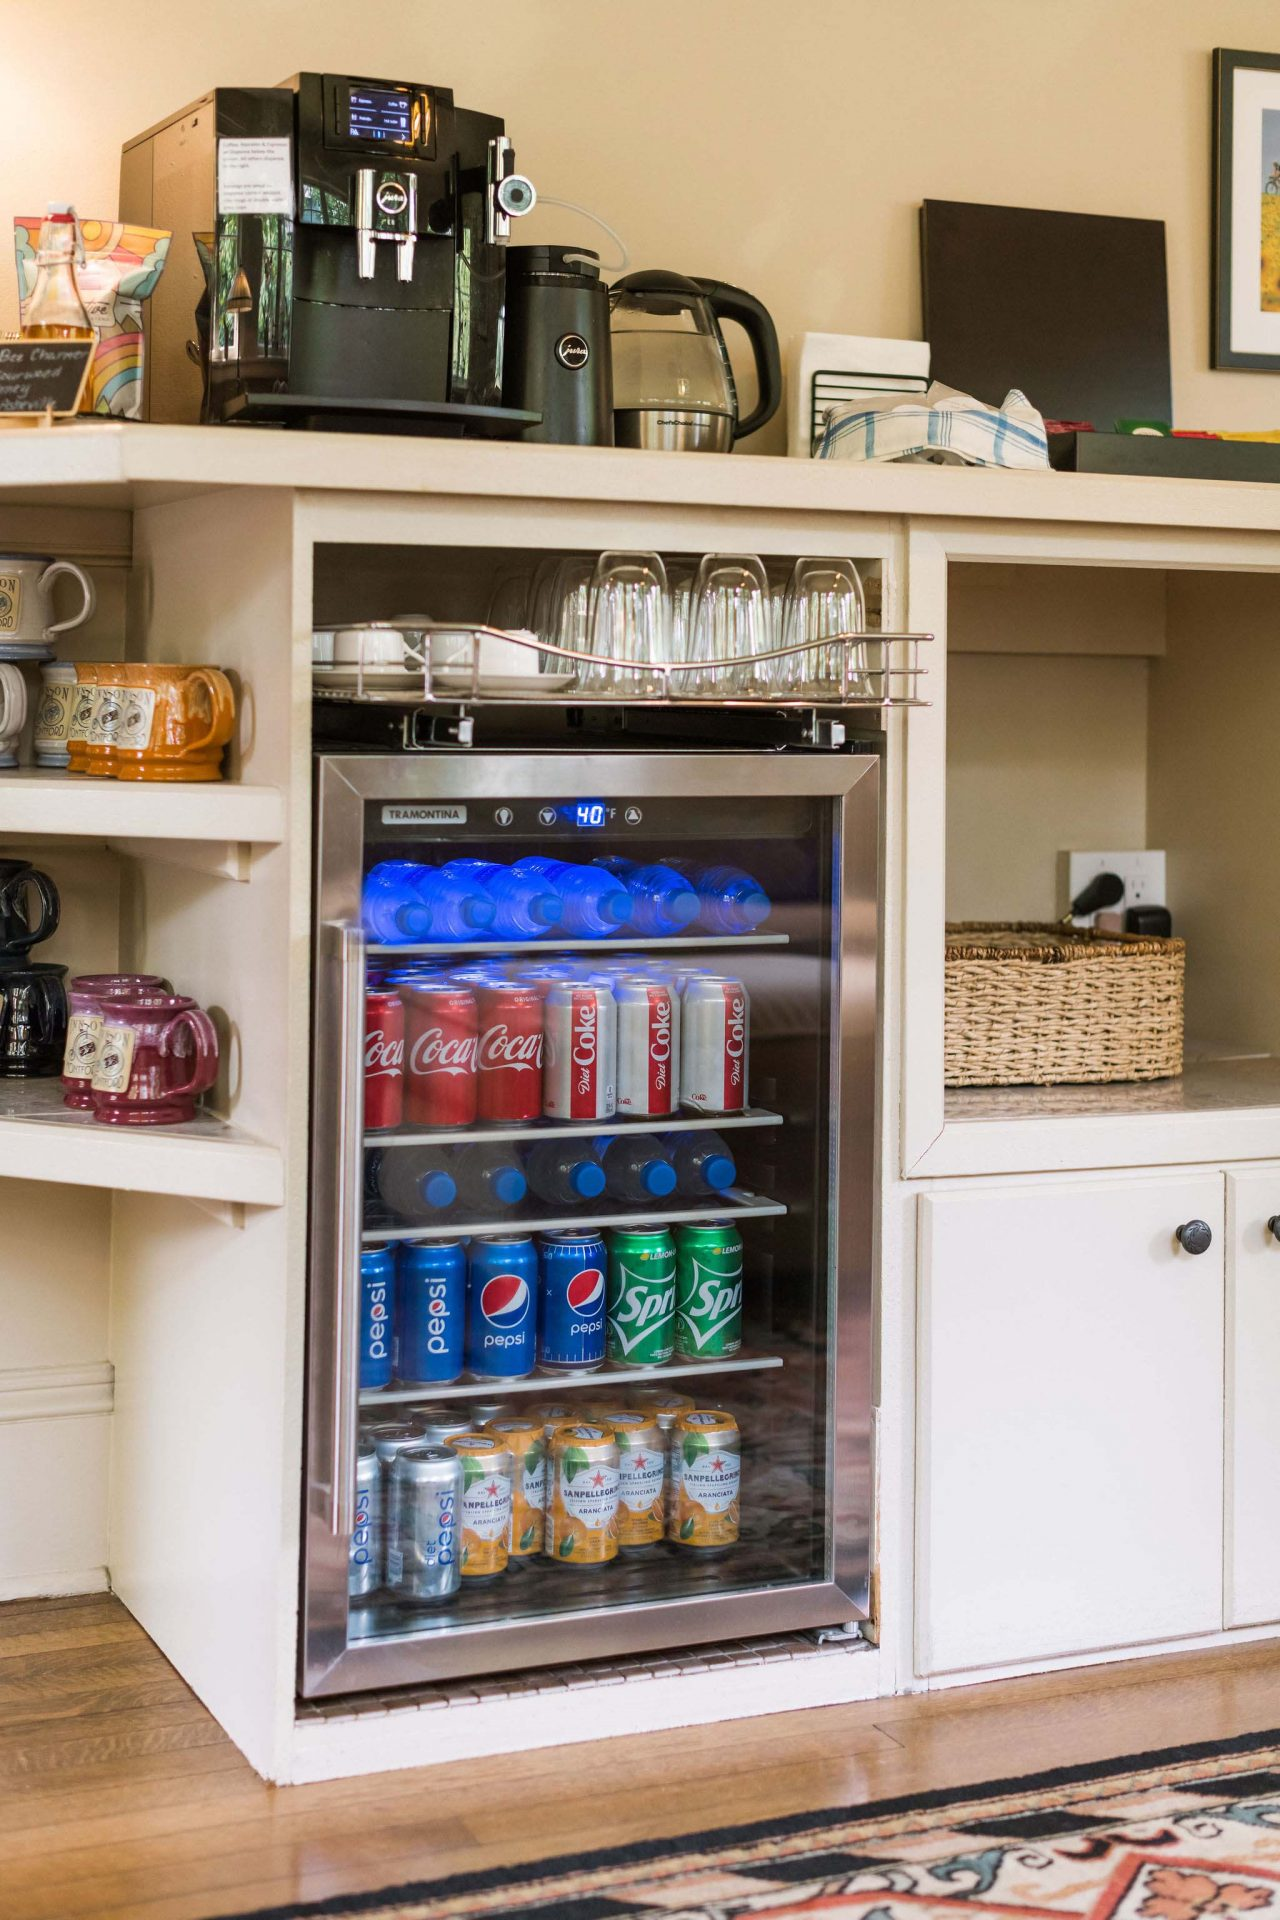 Amenities at guests' disposal - a fridge with beverages, a coffee maker, colorful ceramic mugs, water boiler, and a selection of teas.